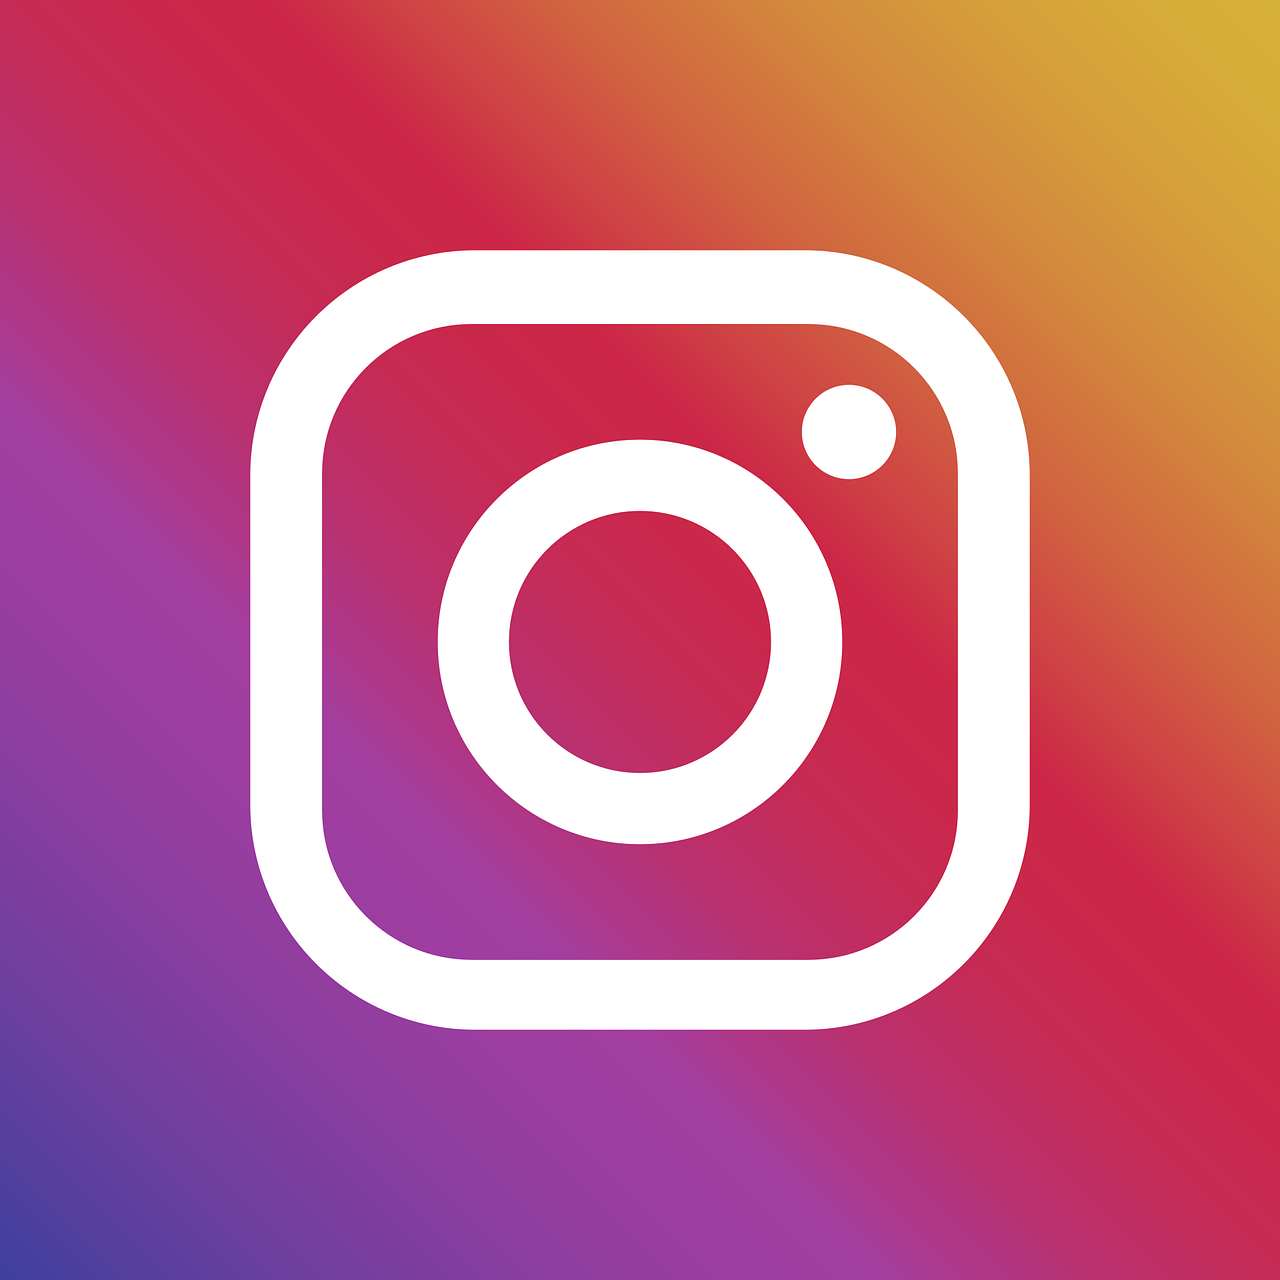 Why is Instagram so popular?